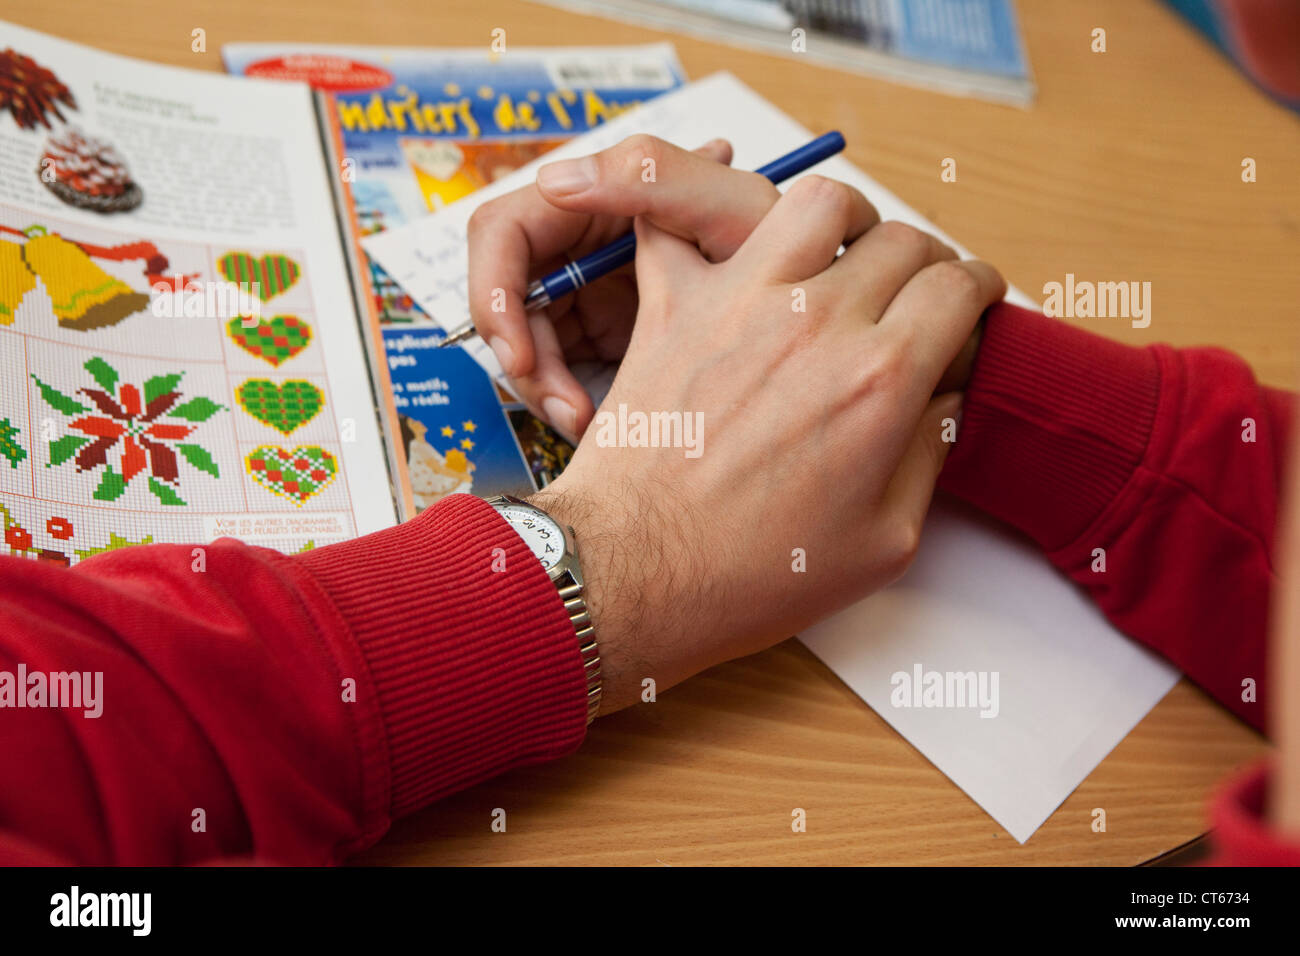 WORK THERAPY - Stock Image